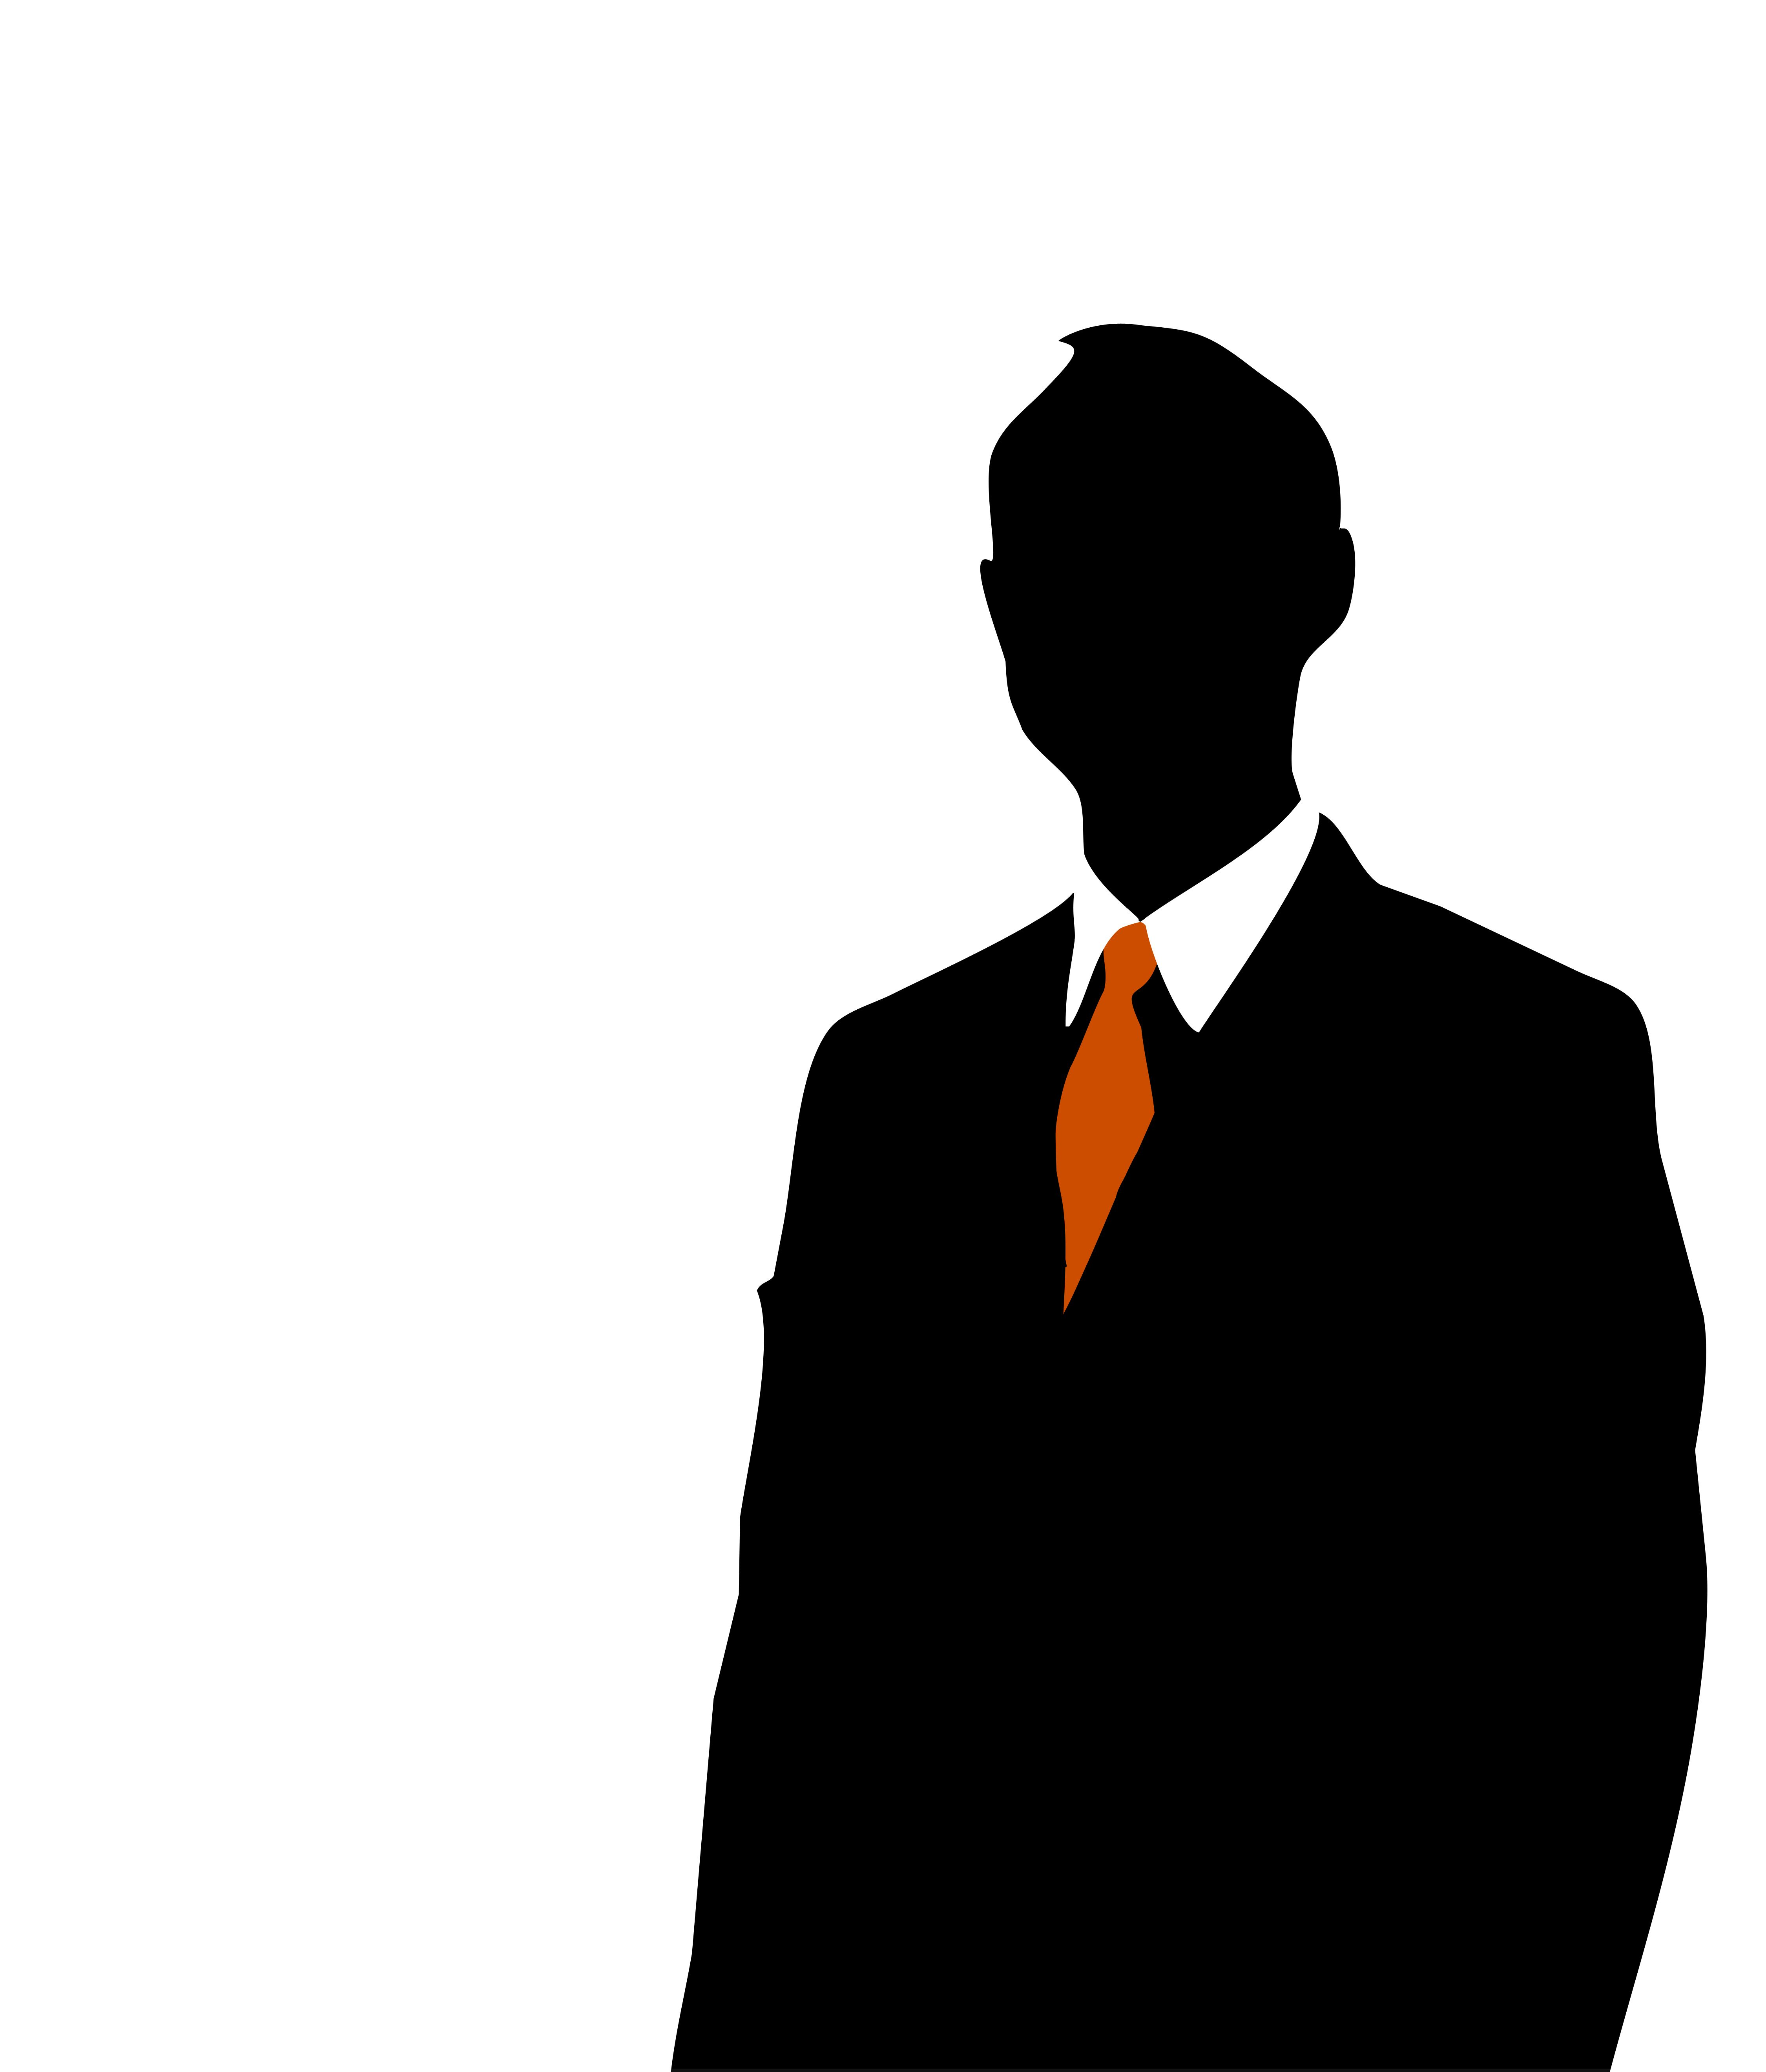 Person clipart. Silhouette of man at